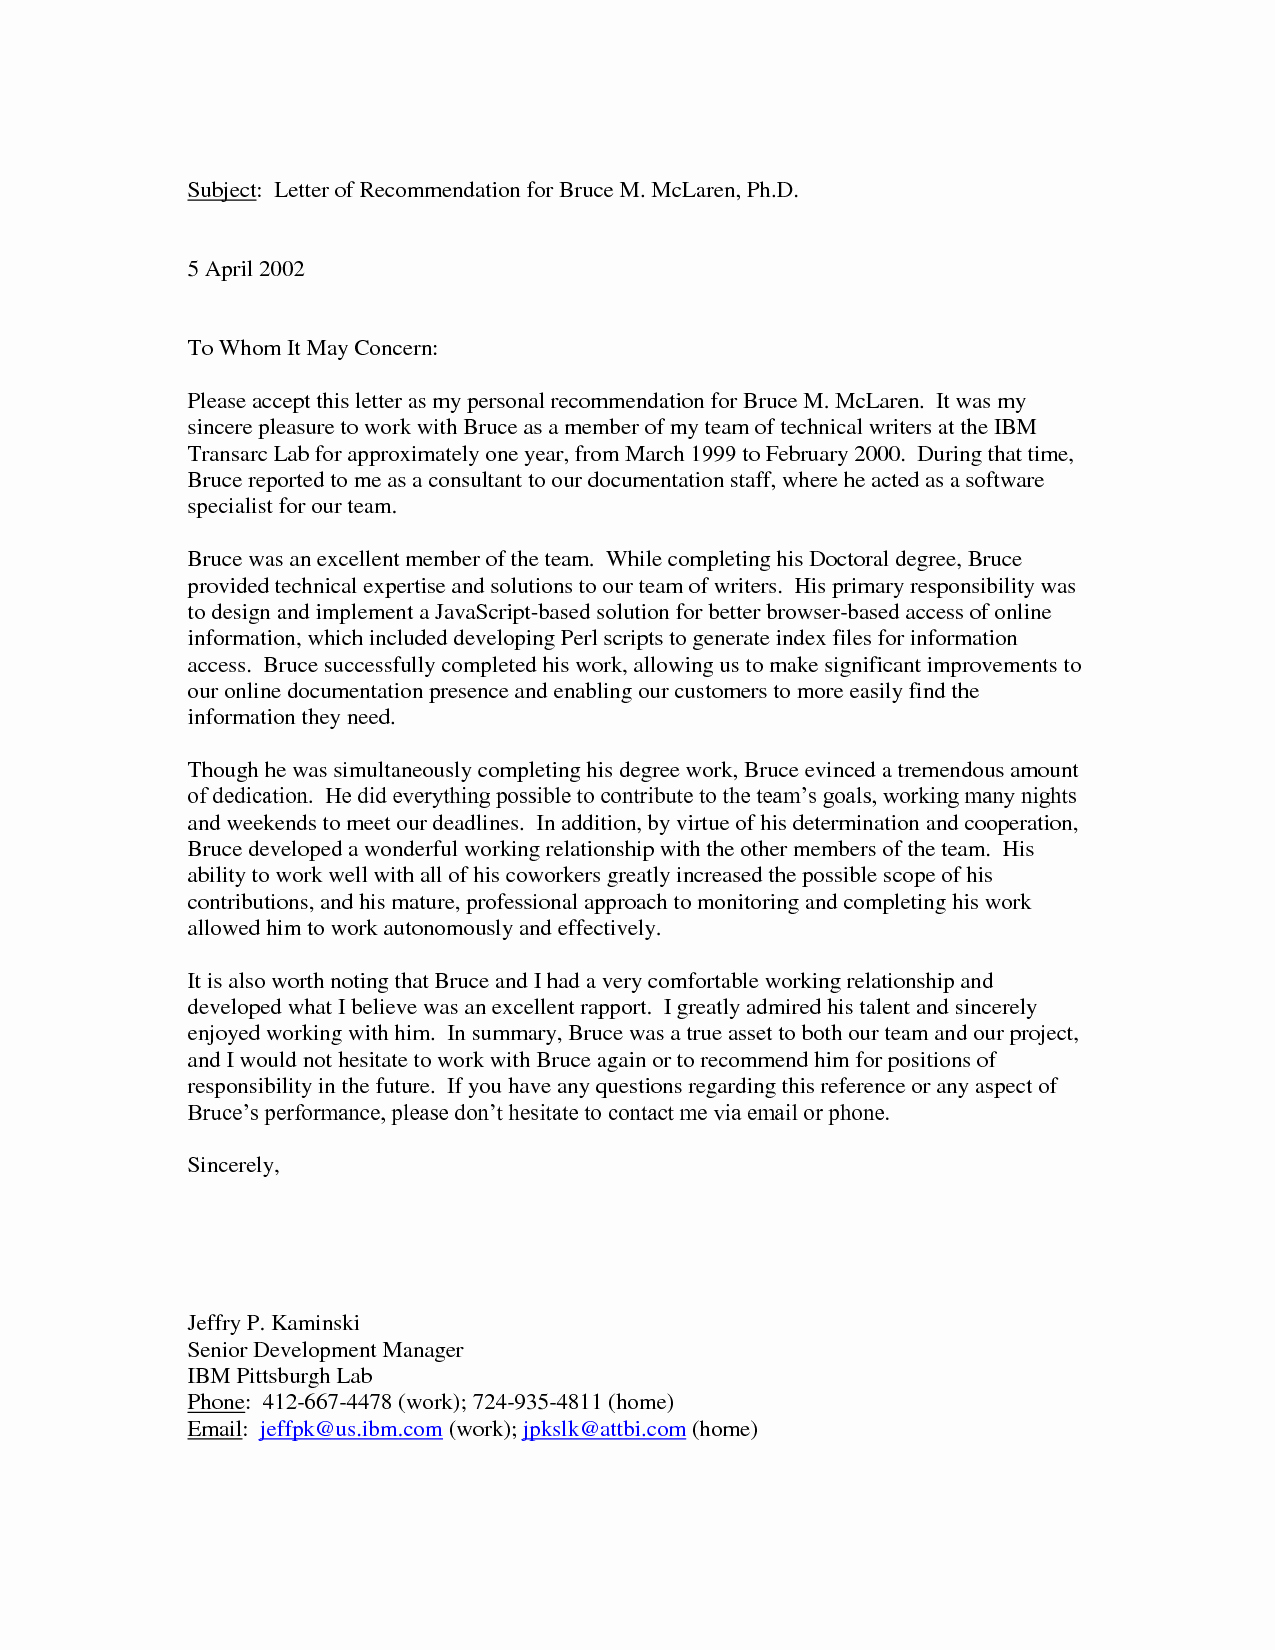 Letters Of Recommendation format Samples Inspirational Personal Letter Re Mendation